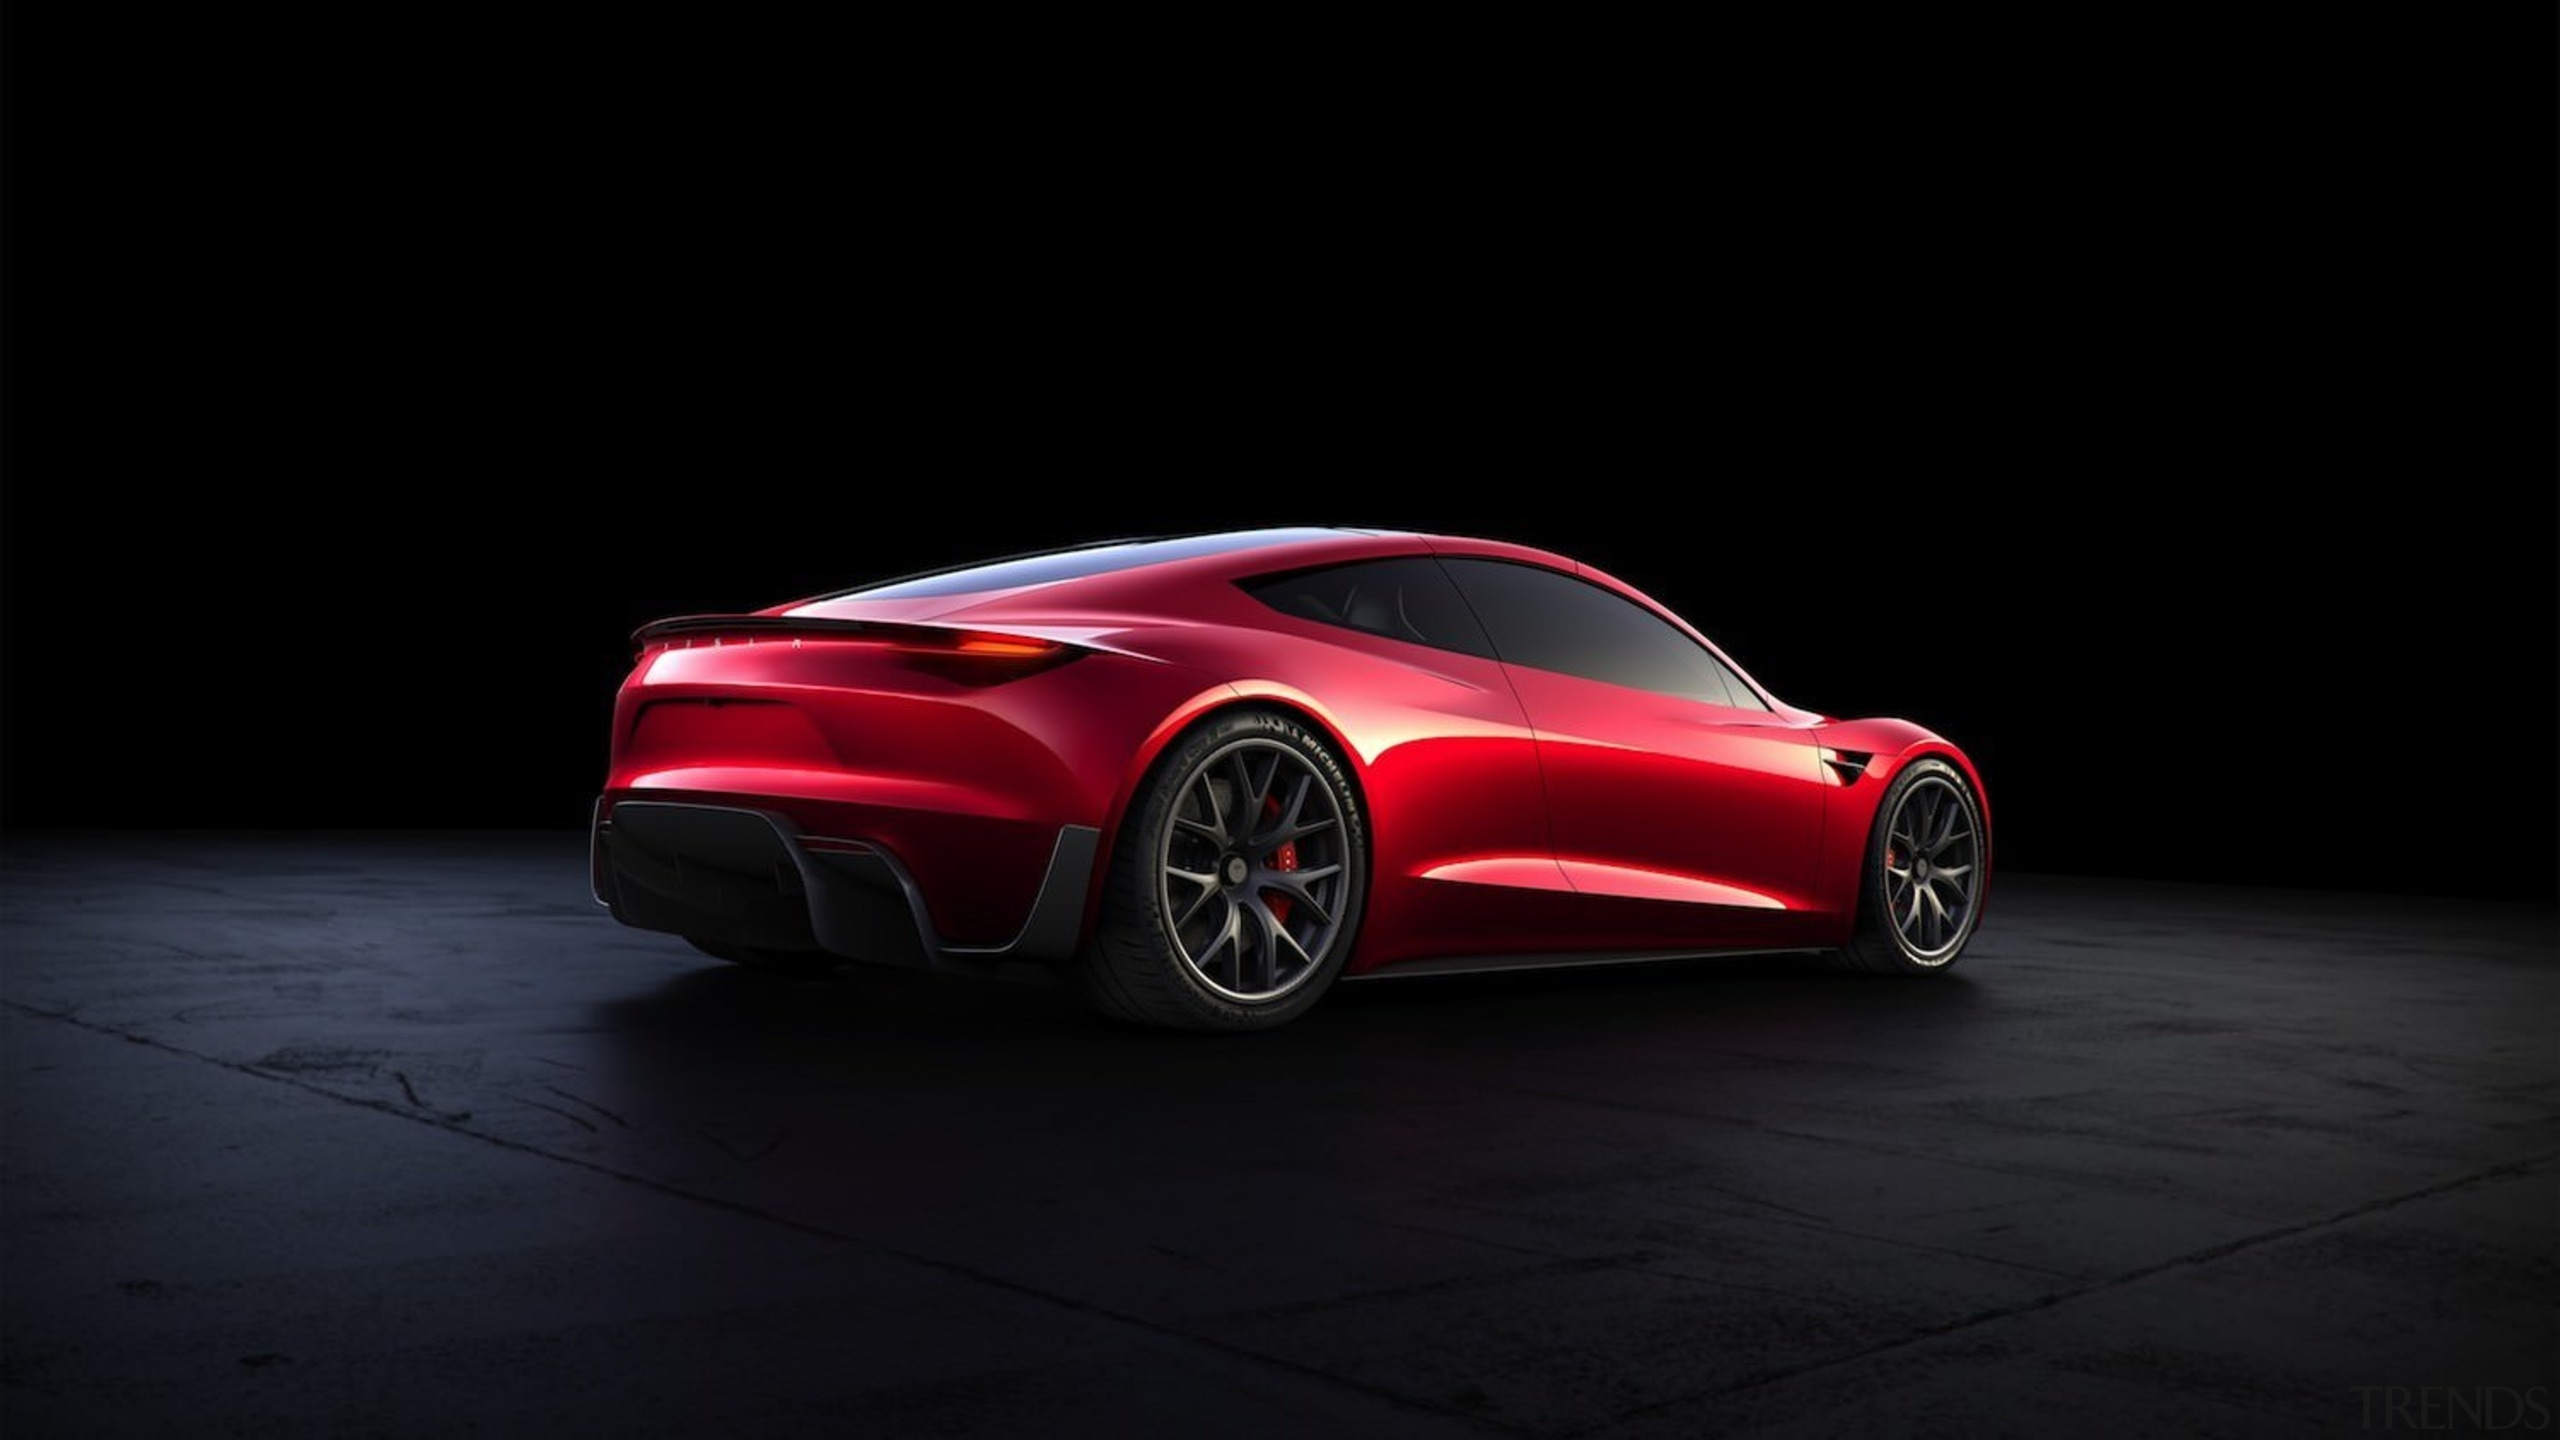 Tesla's new Roadster - Tesla's new Roadster - automotive design, car, city car, computer wallpaper, concept car, family car, luxury vehicle, motor vehicle, performance car, personal luxury car, race car, red, sports car, supercar, vehicle, black